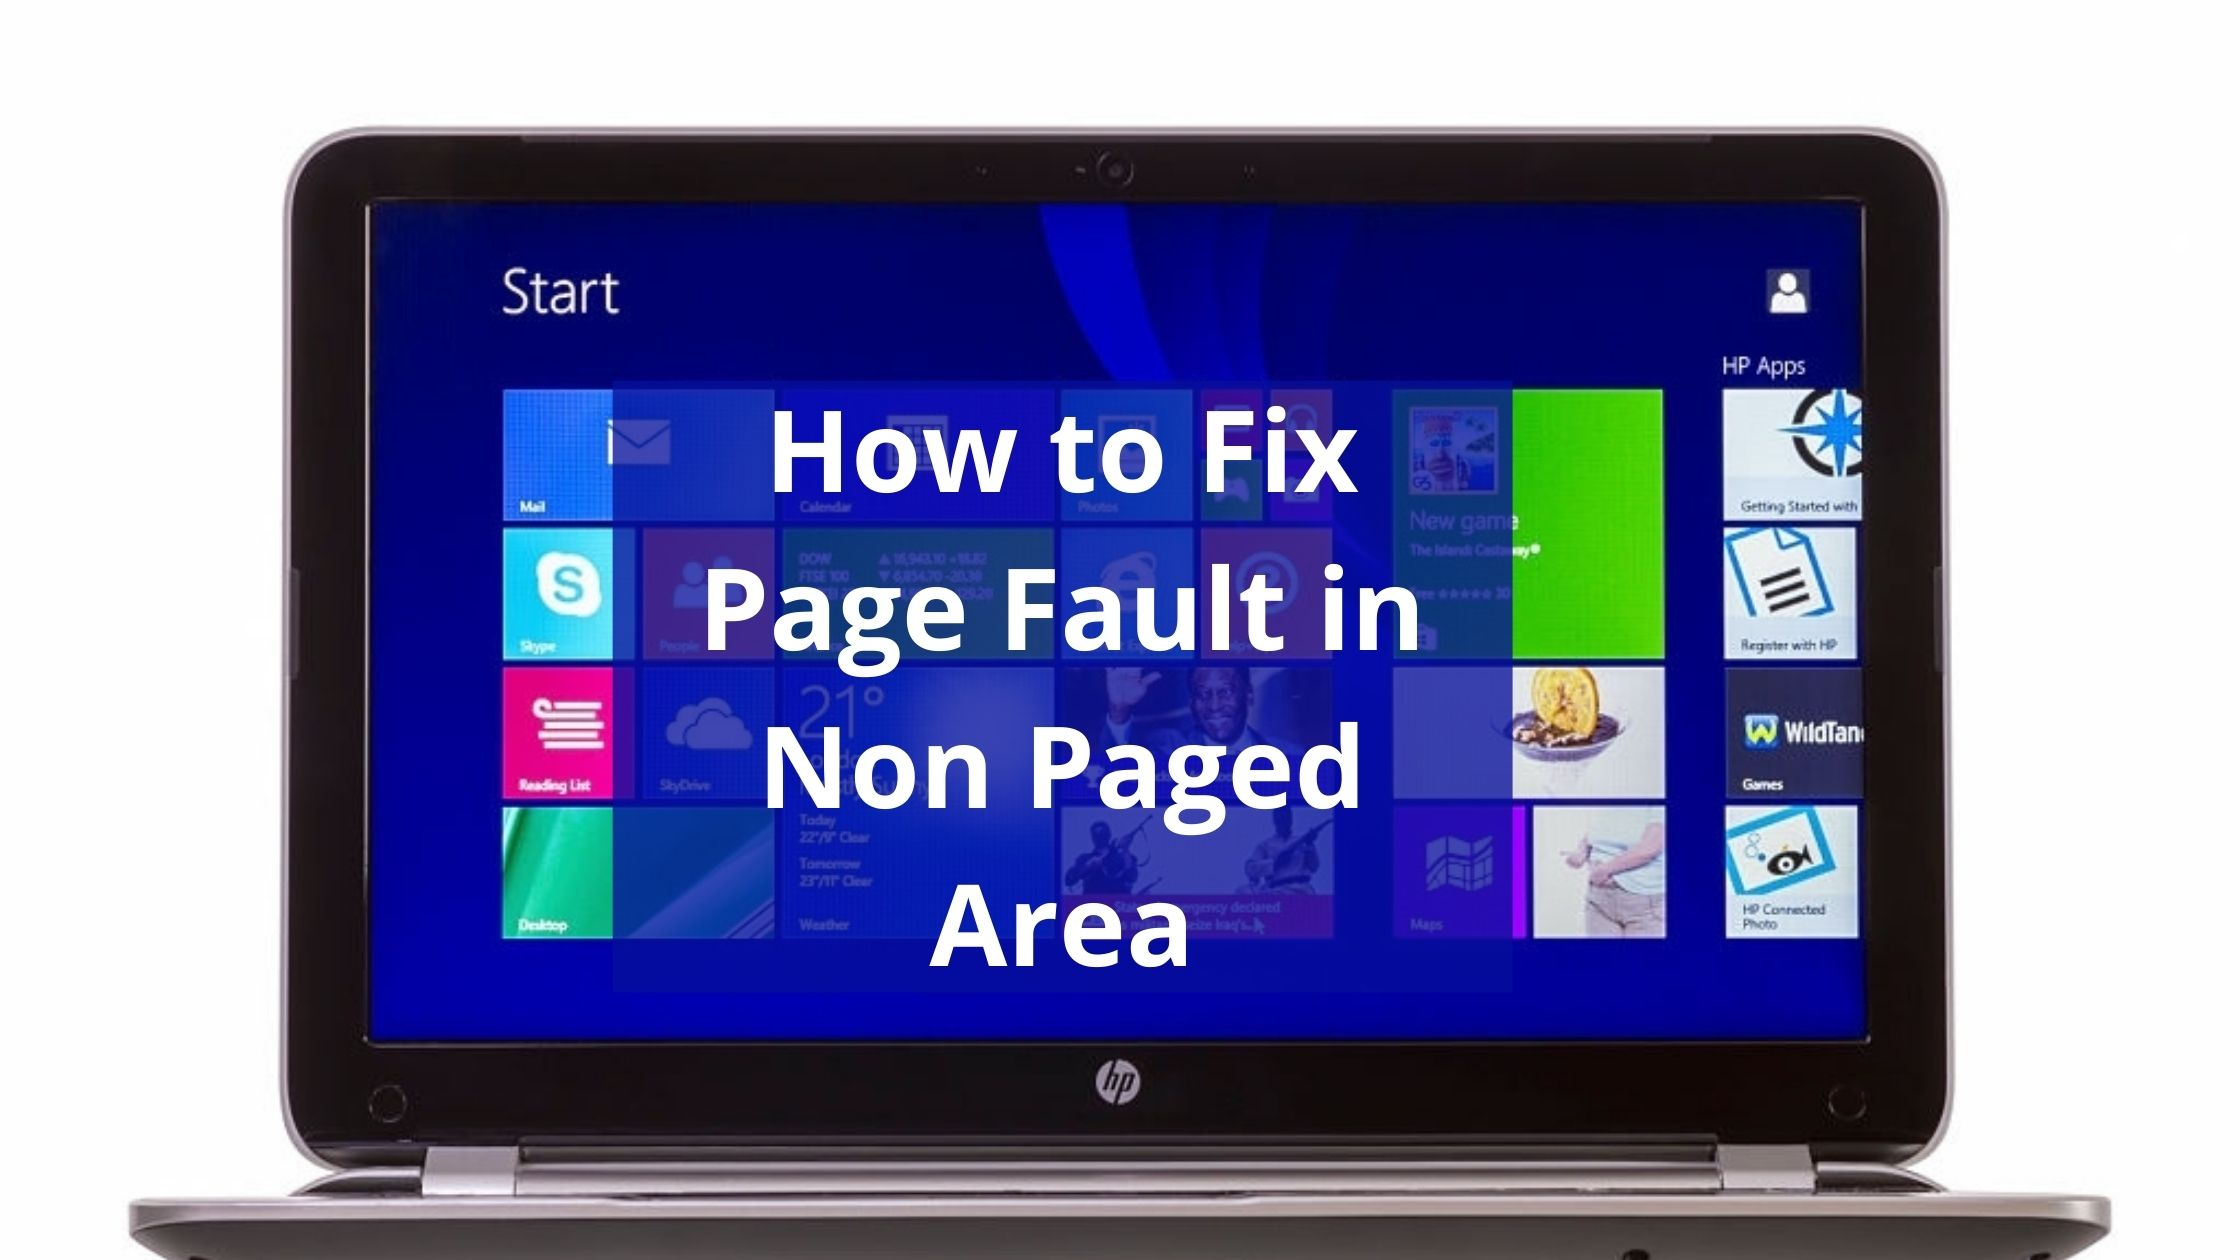 fix page fault in non paged area